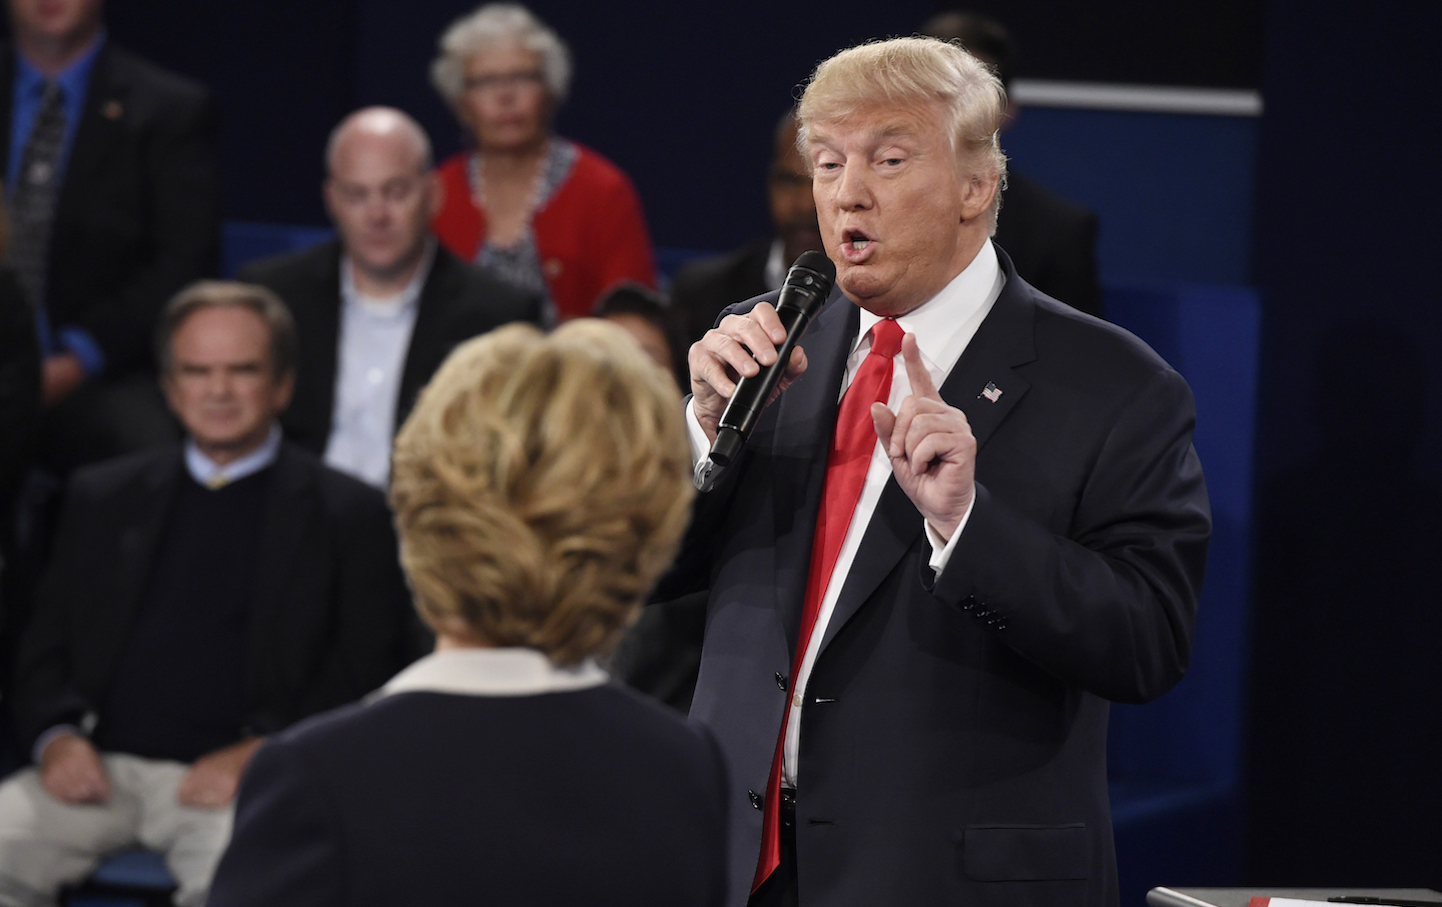 Trump speaks during the presidential town hall debate with Clinton at Washington University in St. Loui